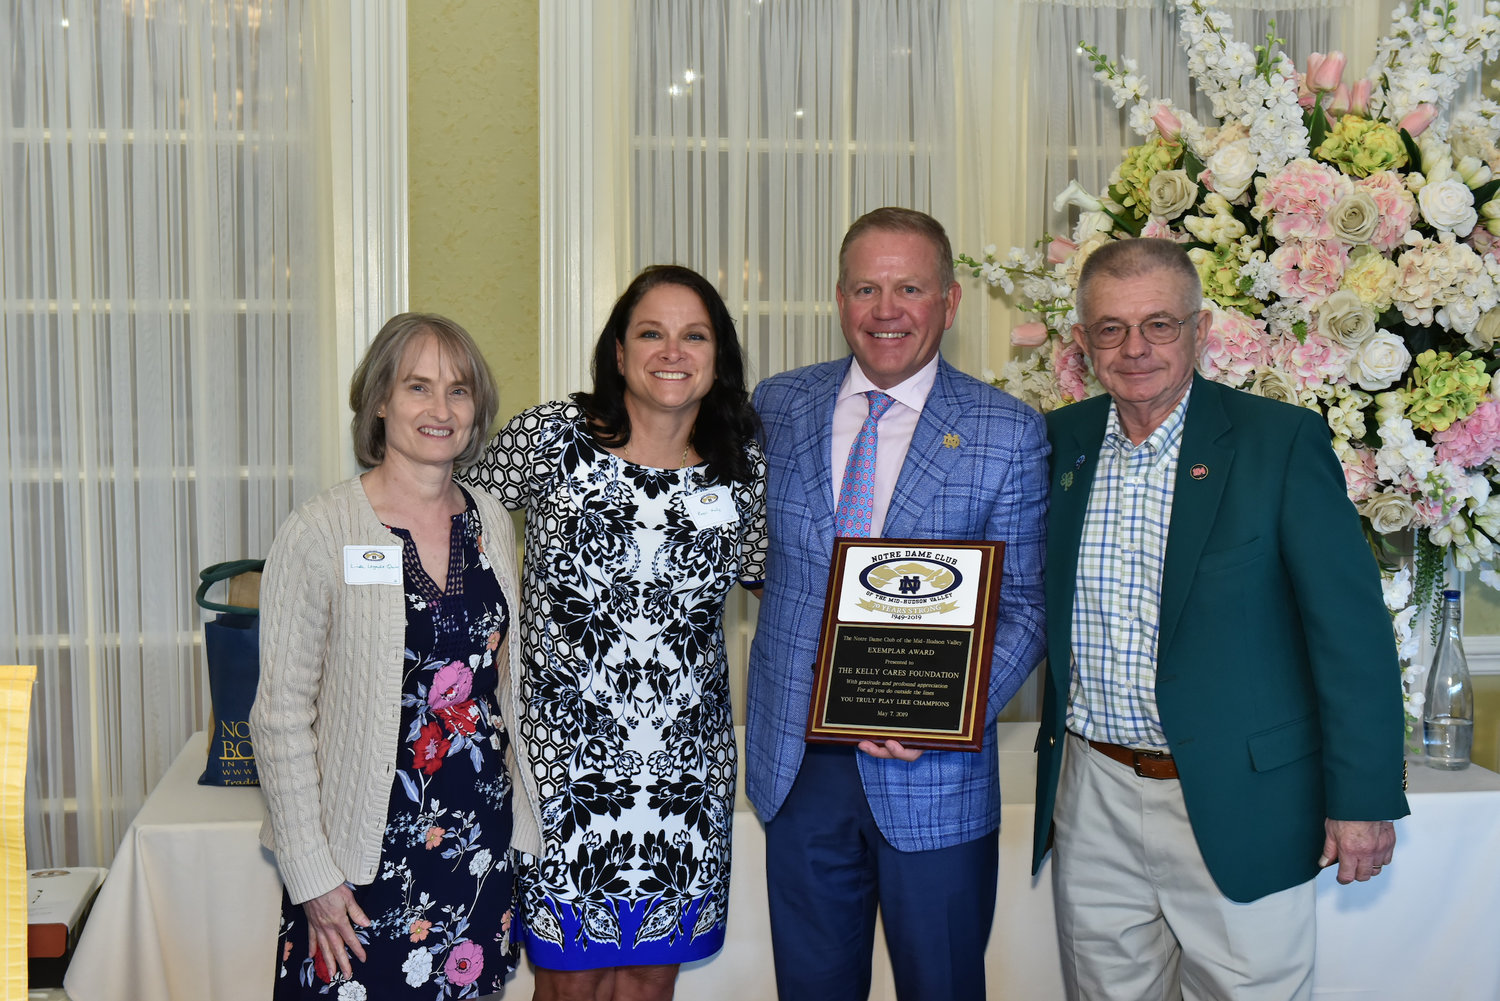 University of Notre Dame football coach Brian Kelly and his wife, Paqui, were presented with the Notre Dame Club of the Mid-Hudson Valley's Exemplar Award by club co-presidents Linda Legault Quinn, left, and Les McCarthy, right, at the 2019 Universal Notre Dame Celebration at the Grandview in Poughkeepsie May 7. The Kellys were recognized for their work with their Kelly Cares Foundation.